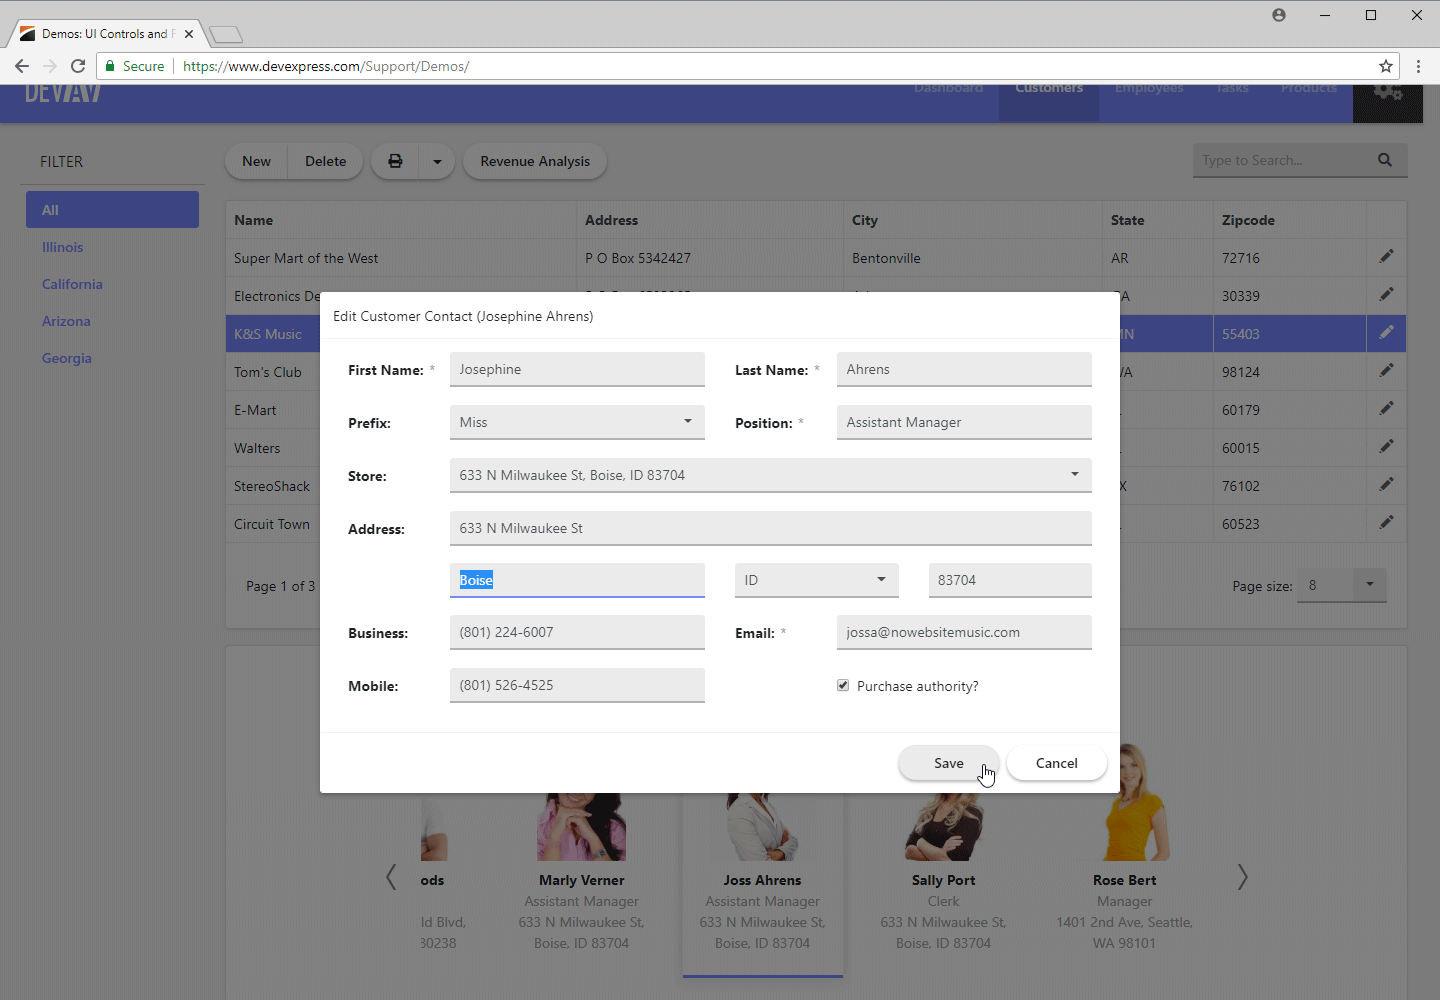 ASP.NET Bootstrap Web Forms App - Automatic Layout in Popup Edit Form